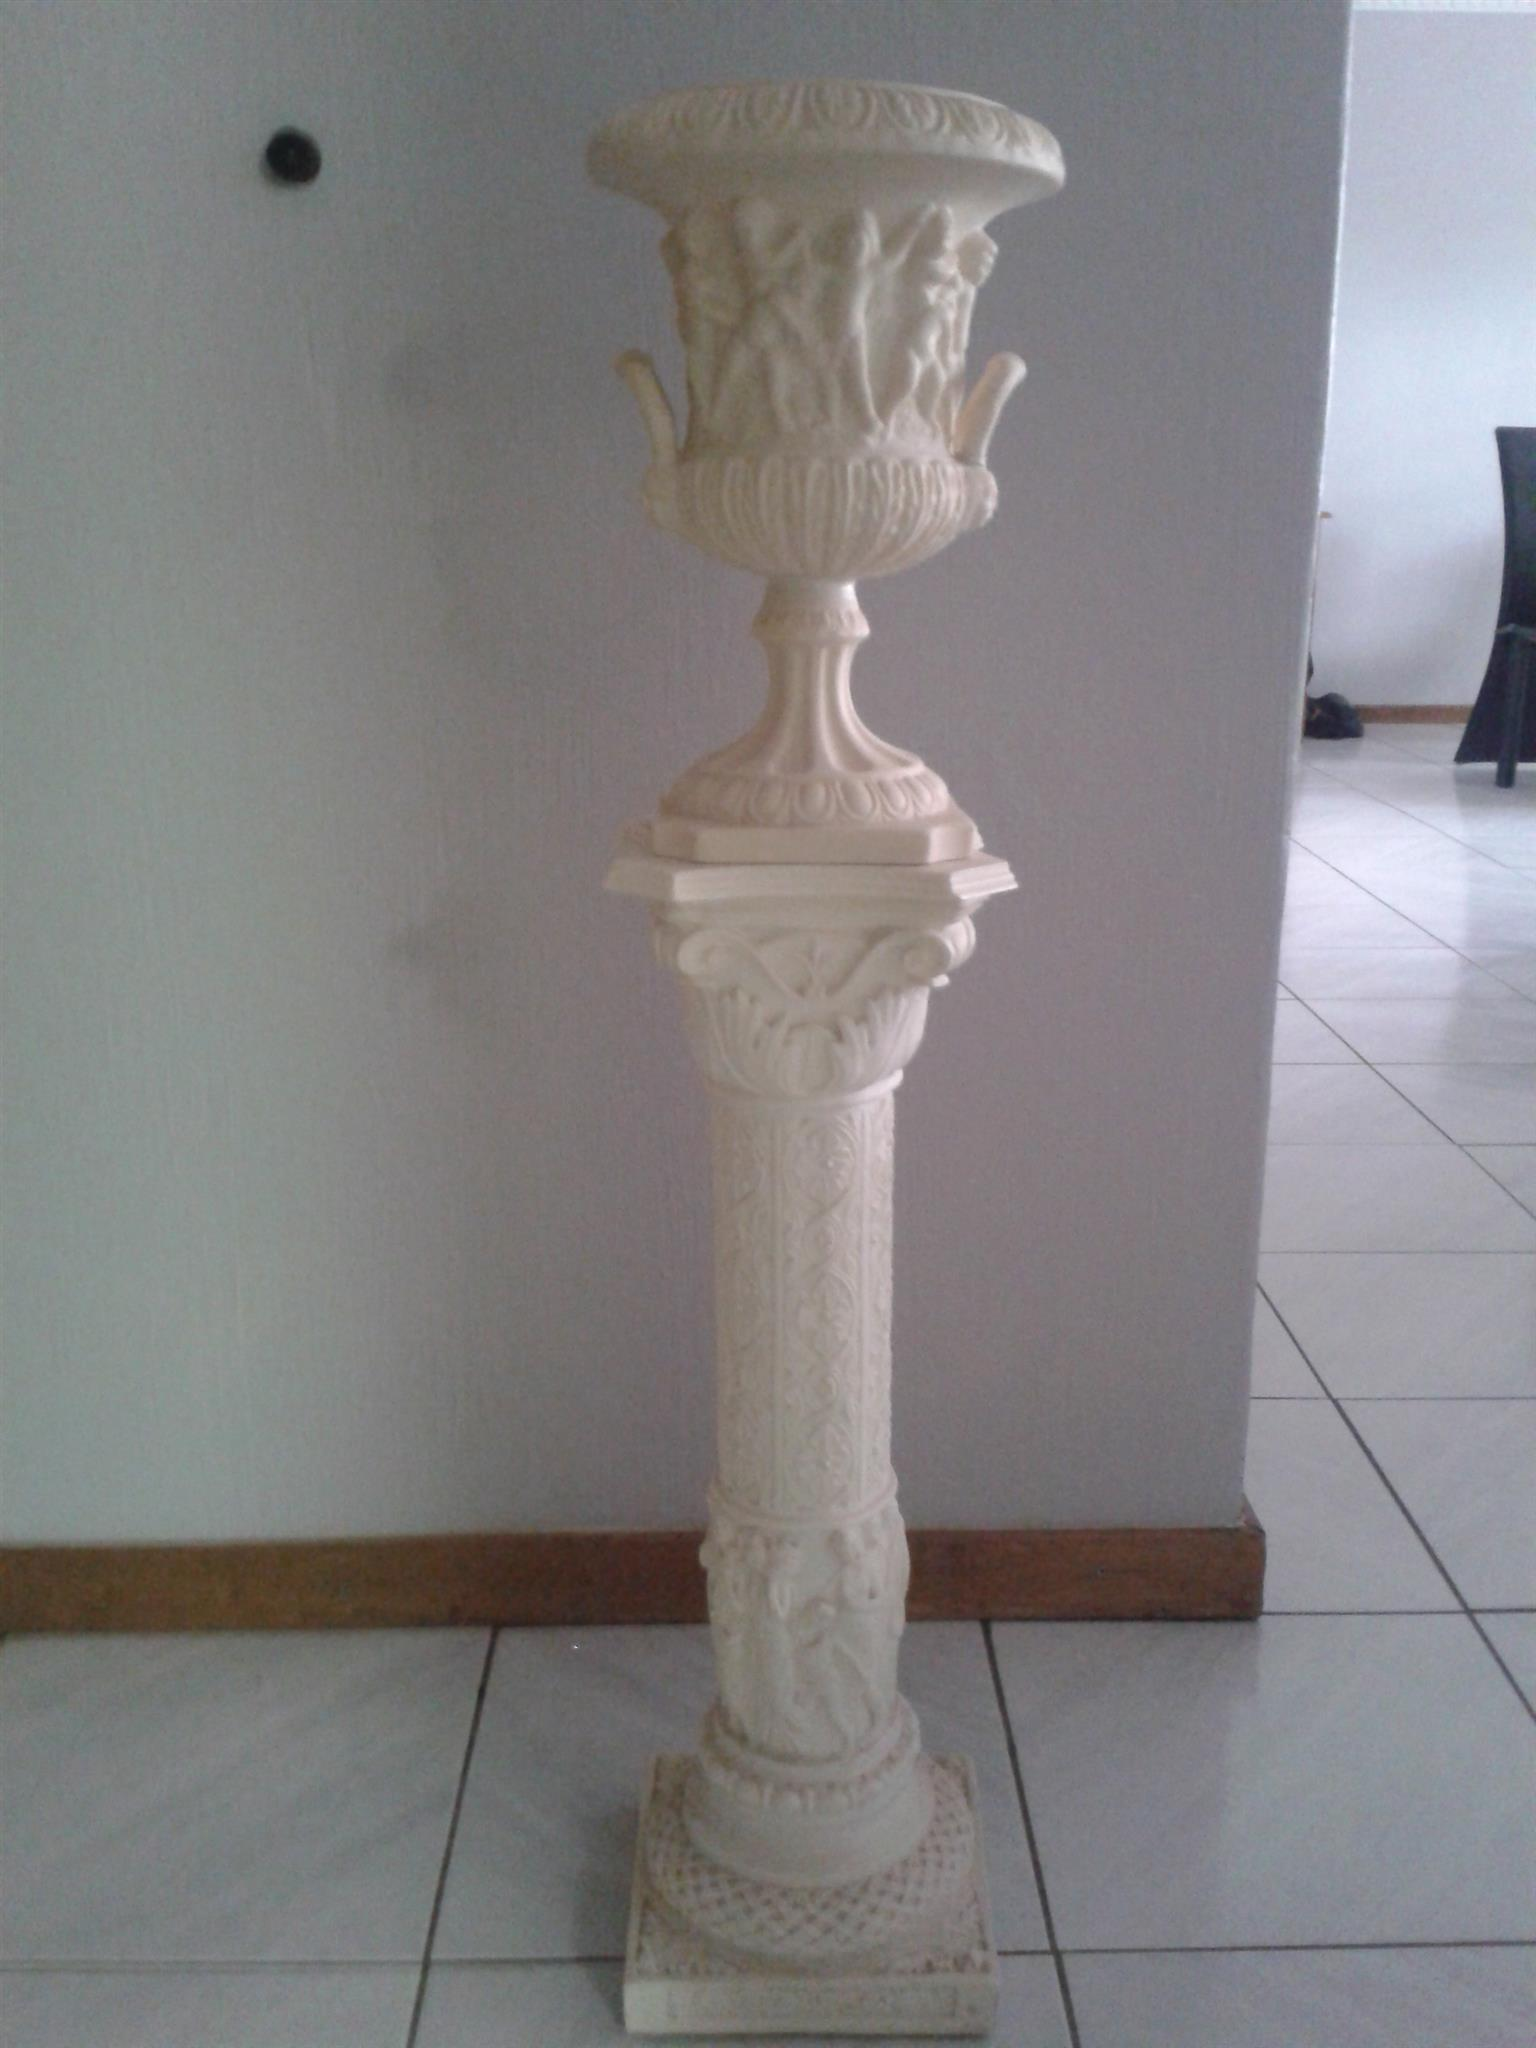 White column with matching planter